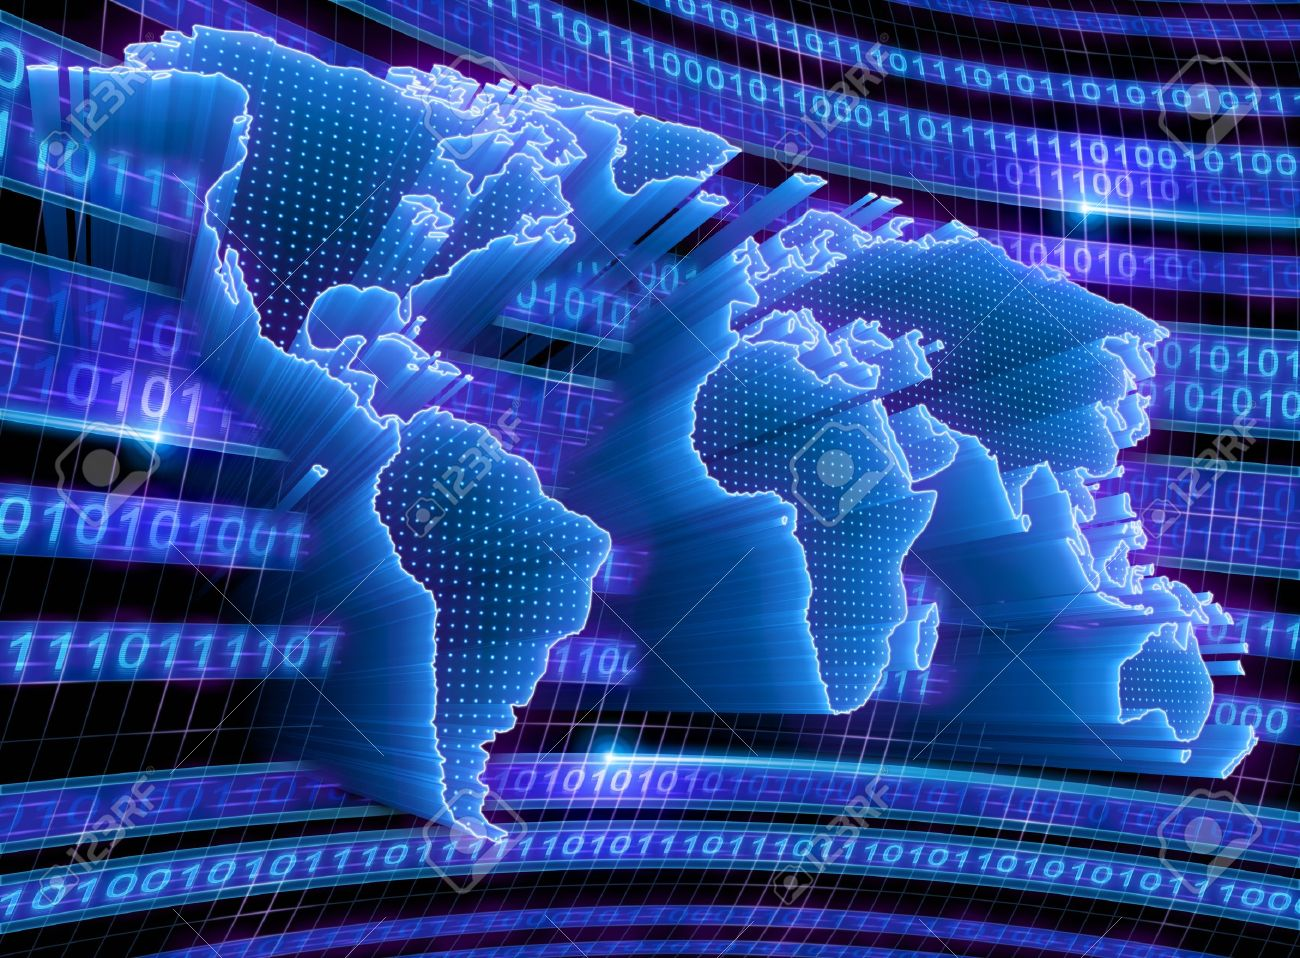 3D World Map with binary code, dots and lights representing the digital world. Concept of digital technology around the world. - 8929120